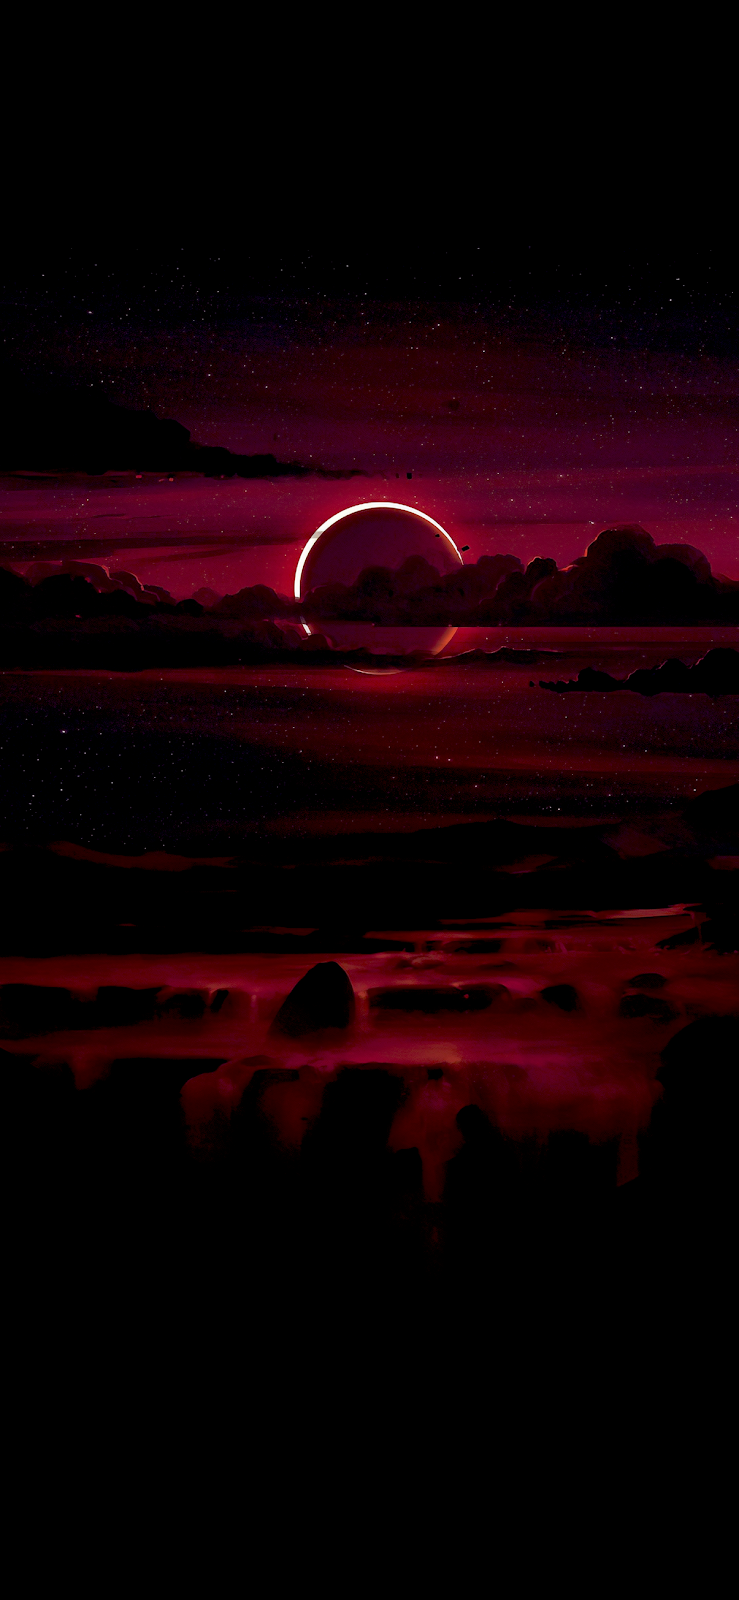 Eclipse Wallpaper Iphone Android Background Followme Dark Wallpaper Iphone Galaxy Phone Wallpaper Beautiful Wallpapers Backgrounds